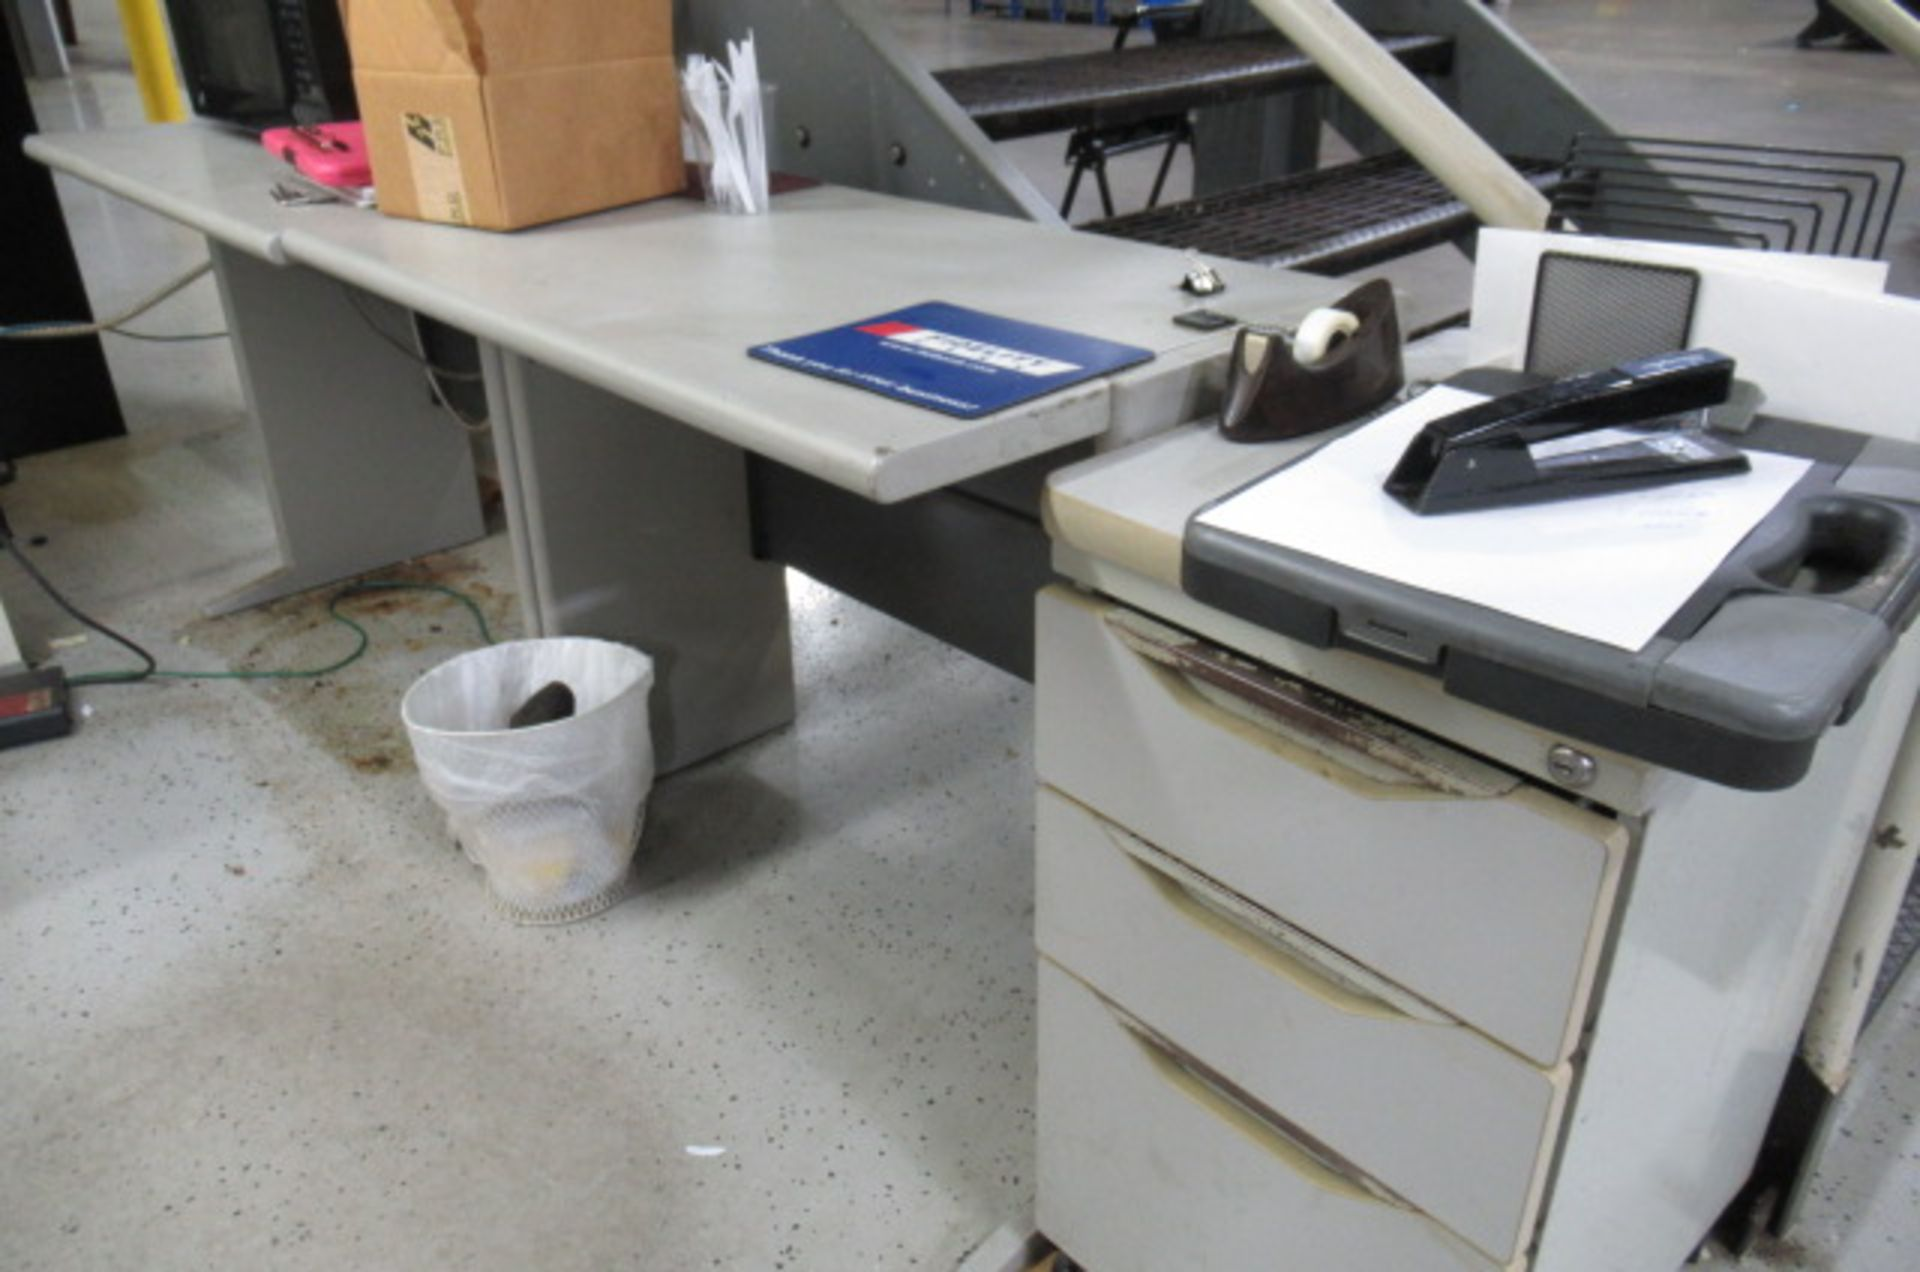 Shipping Area L shape Desk, File cabinet, Caning Copier, 2-sm tales, 3 Drawer Cabinet - Image 3 of 5